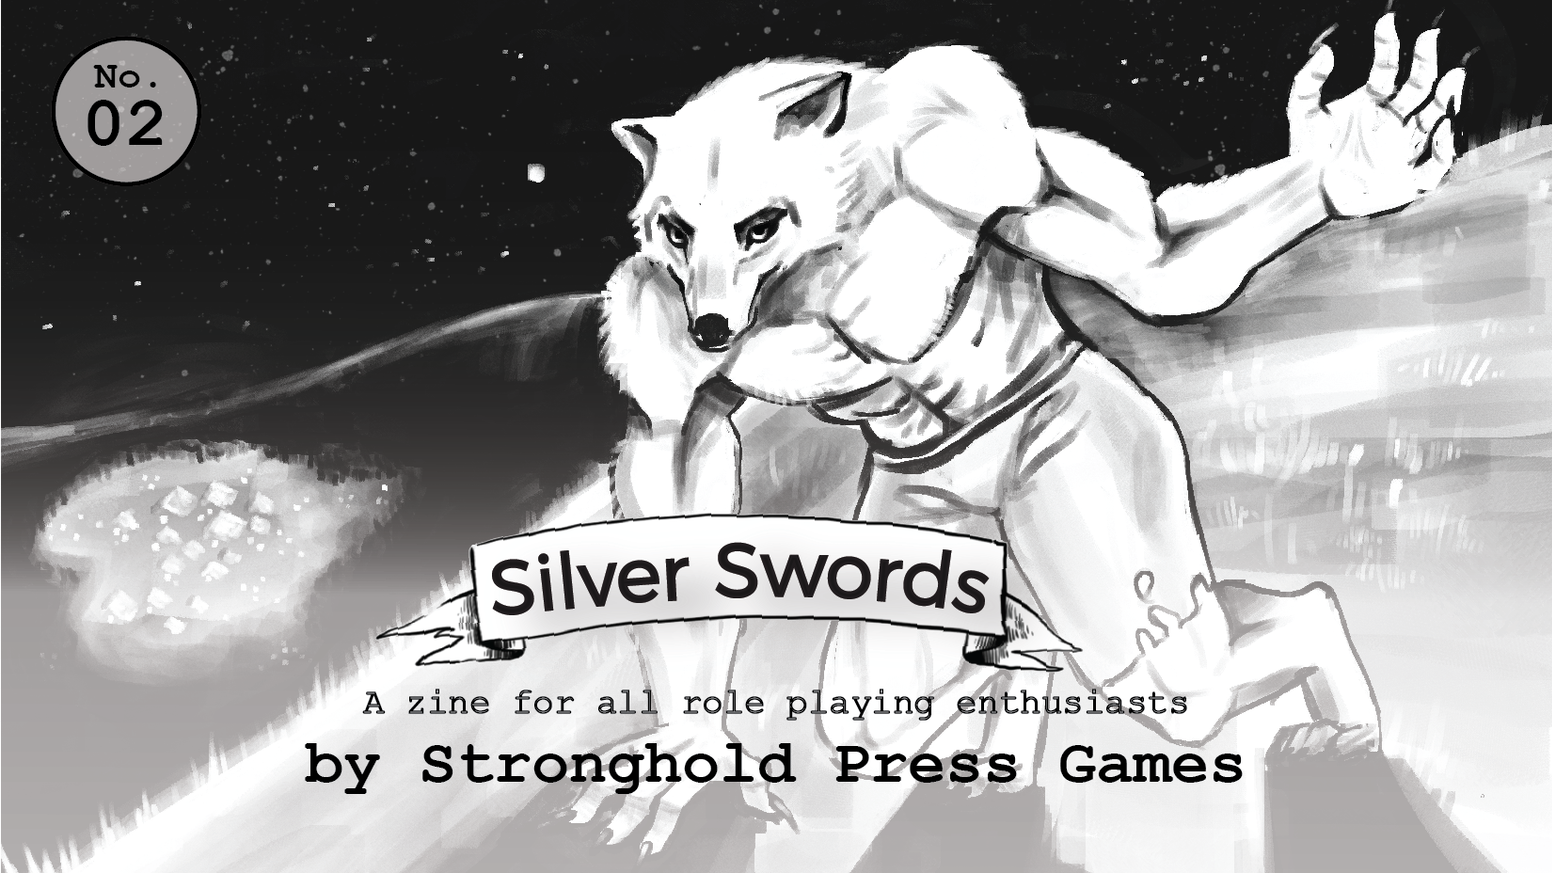 The second issue of the Silver Swords RPG fanzine!